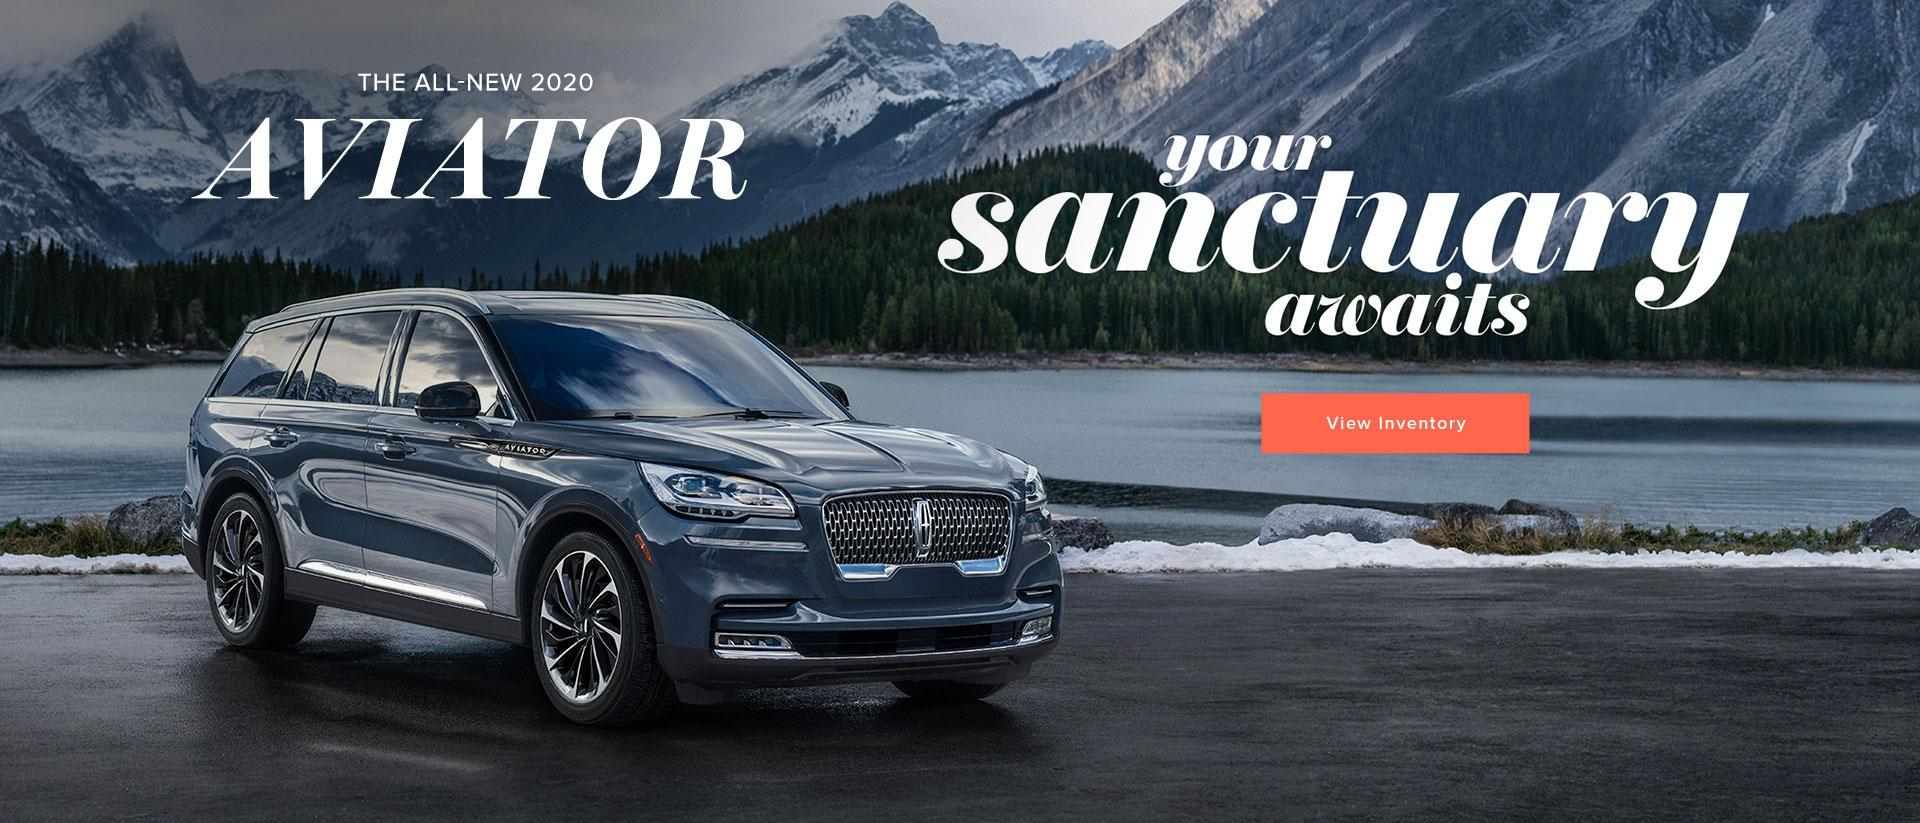 Your Sanctuary Awaits | The All-New 2020 Lincoln Aviator | Lincoln of Canada